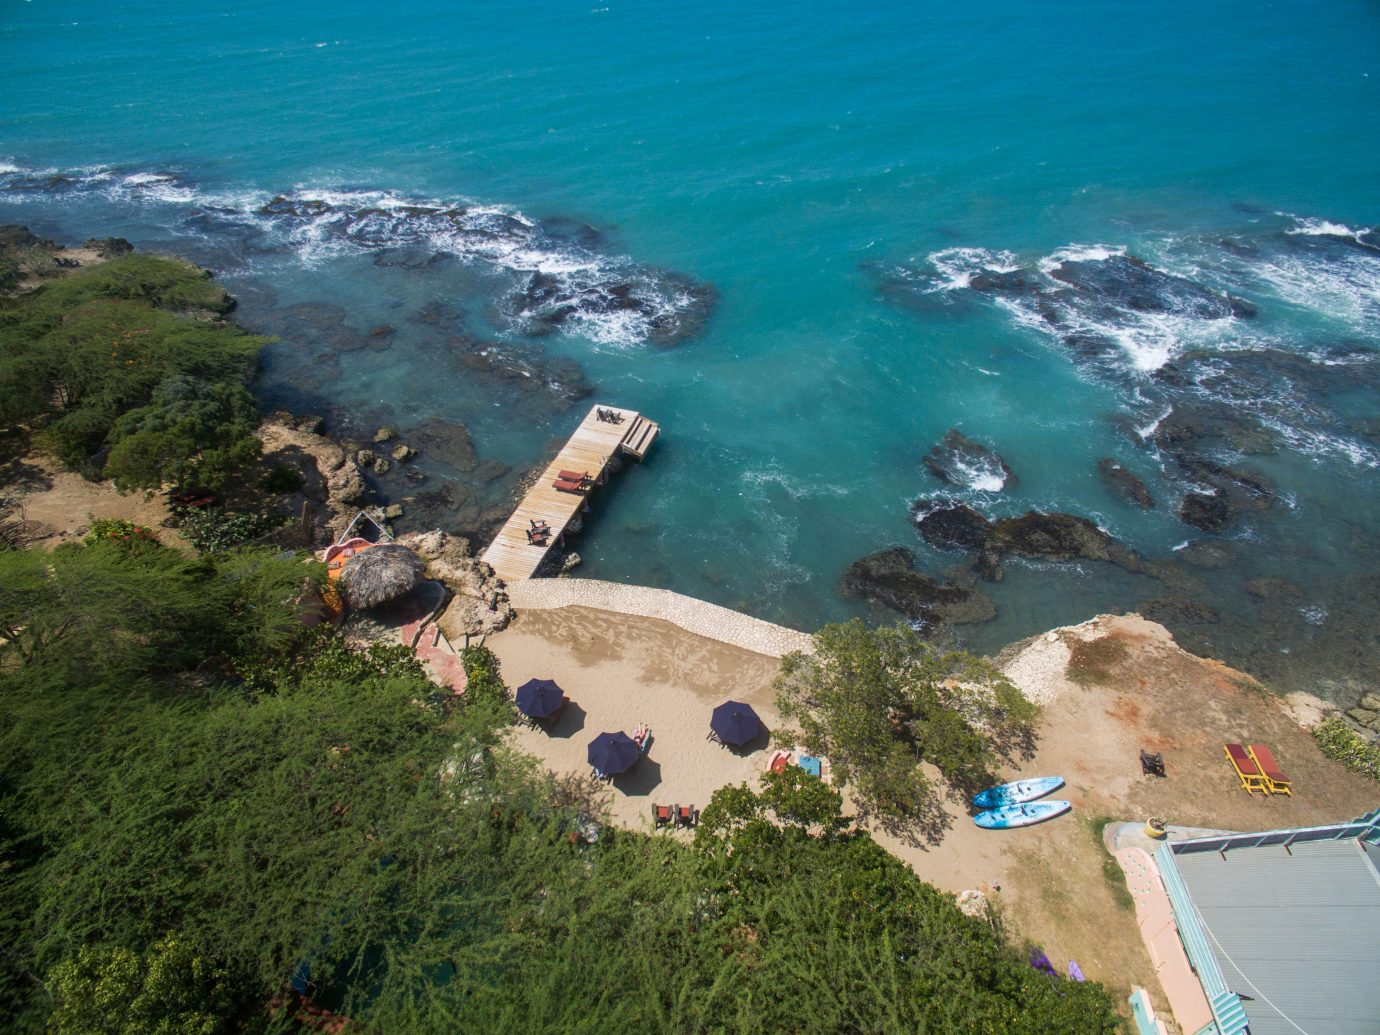 Hotels outdoor water aerial photography Coast Nature Sea cliff atmosphere of earth Ocean terrain cape bay cove reef